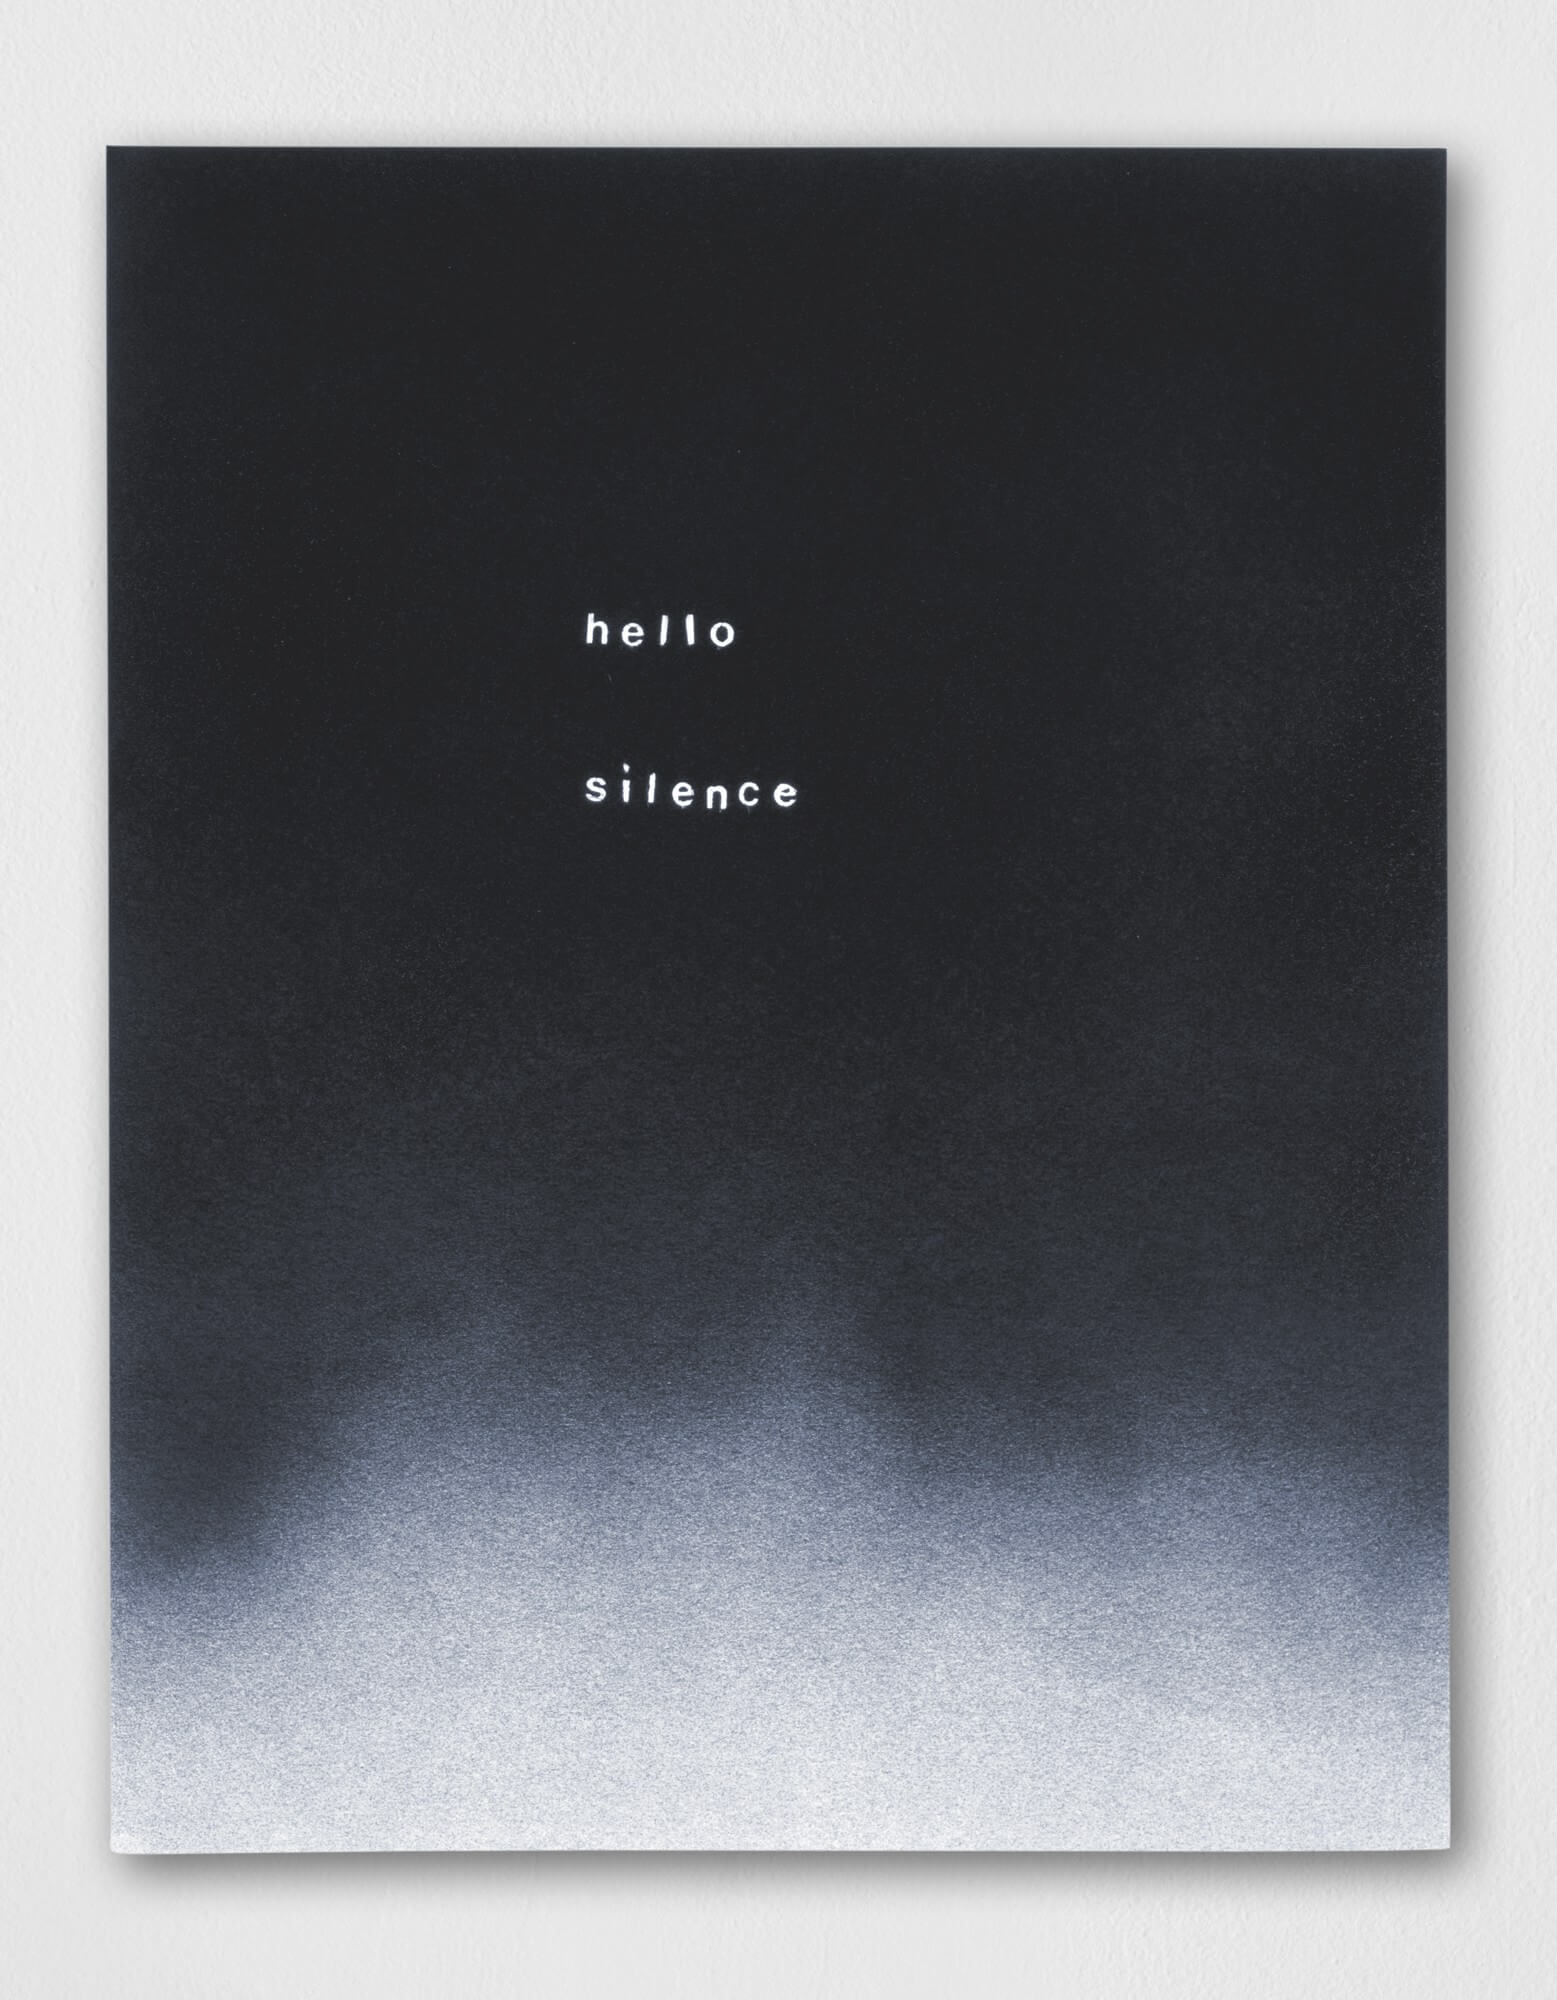 lines out to silence | UGO RONDINONE